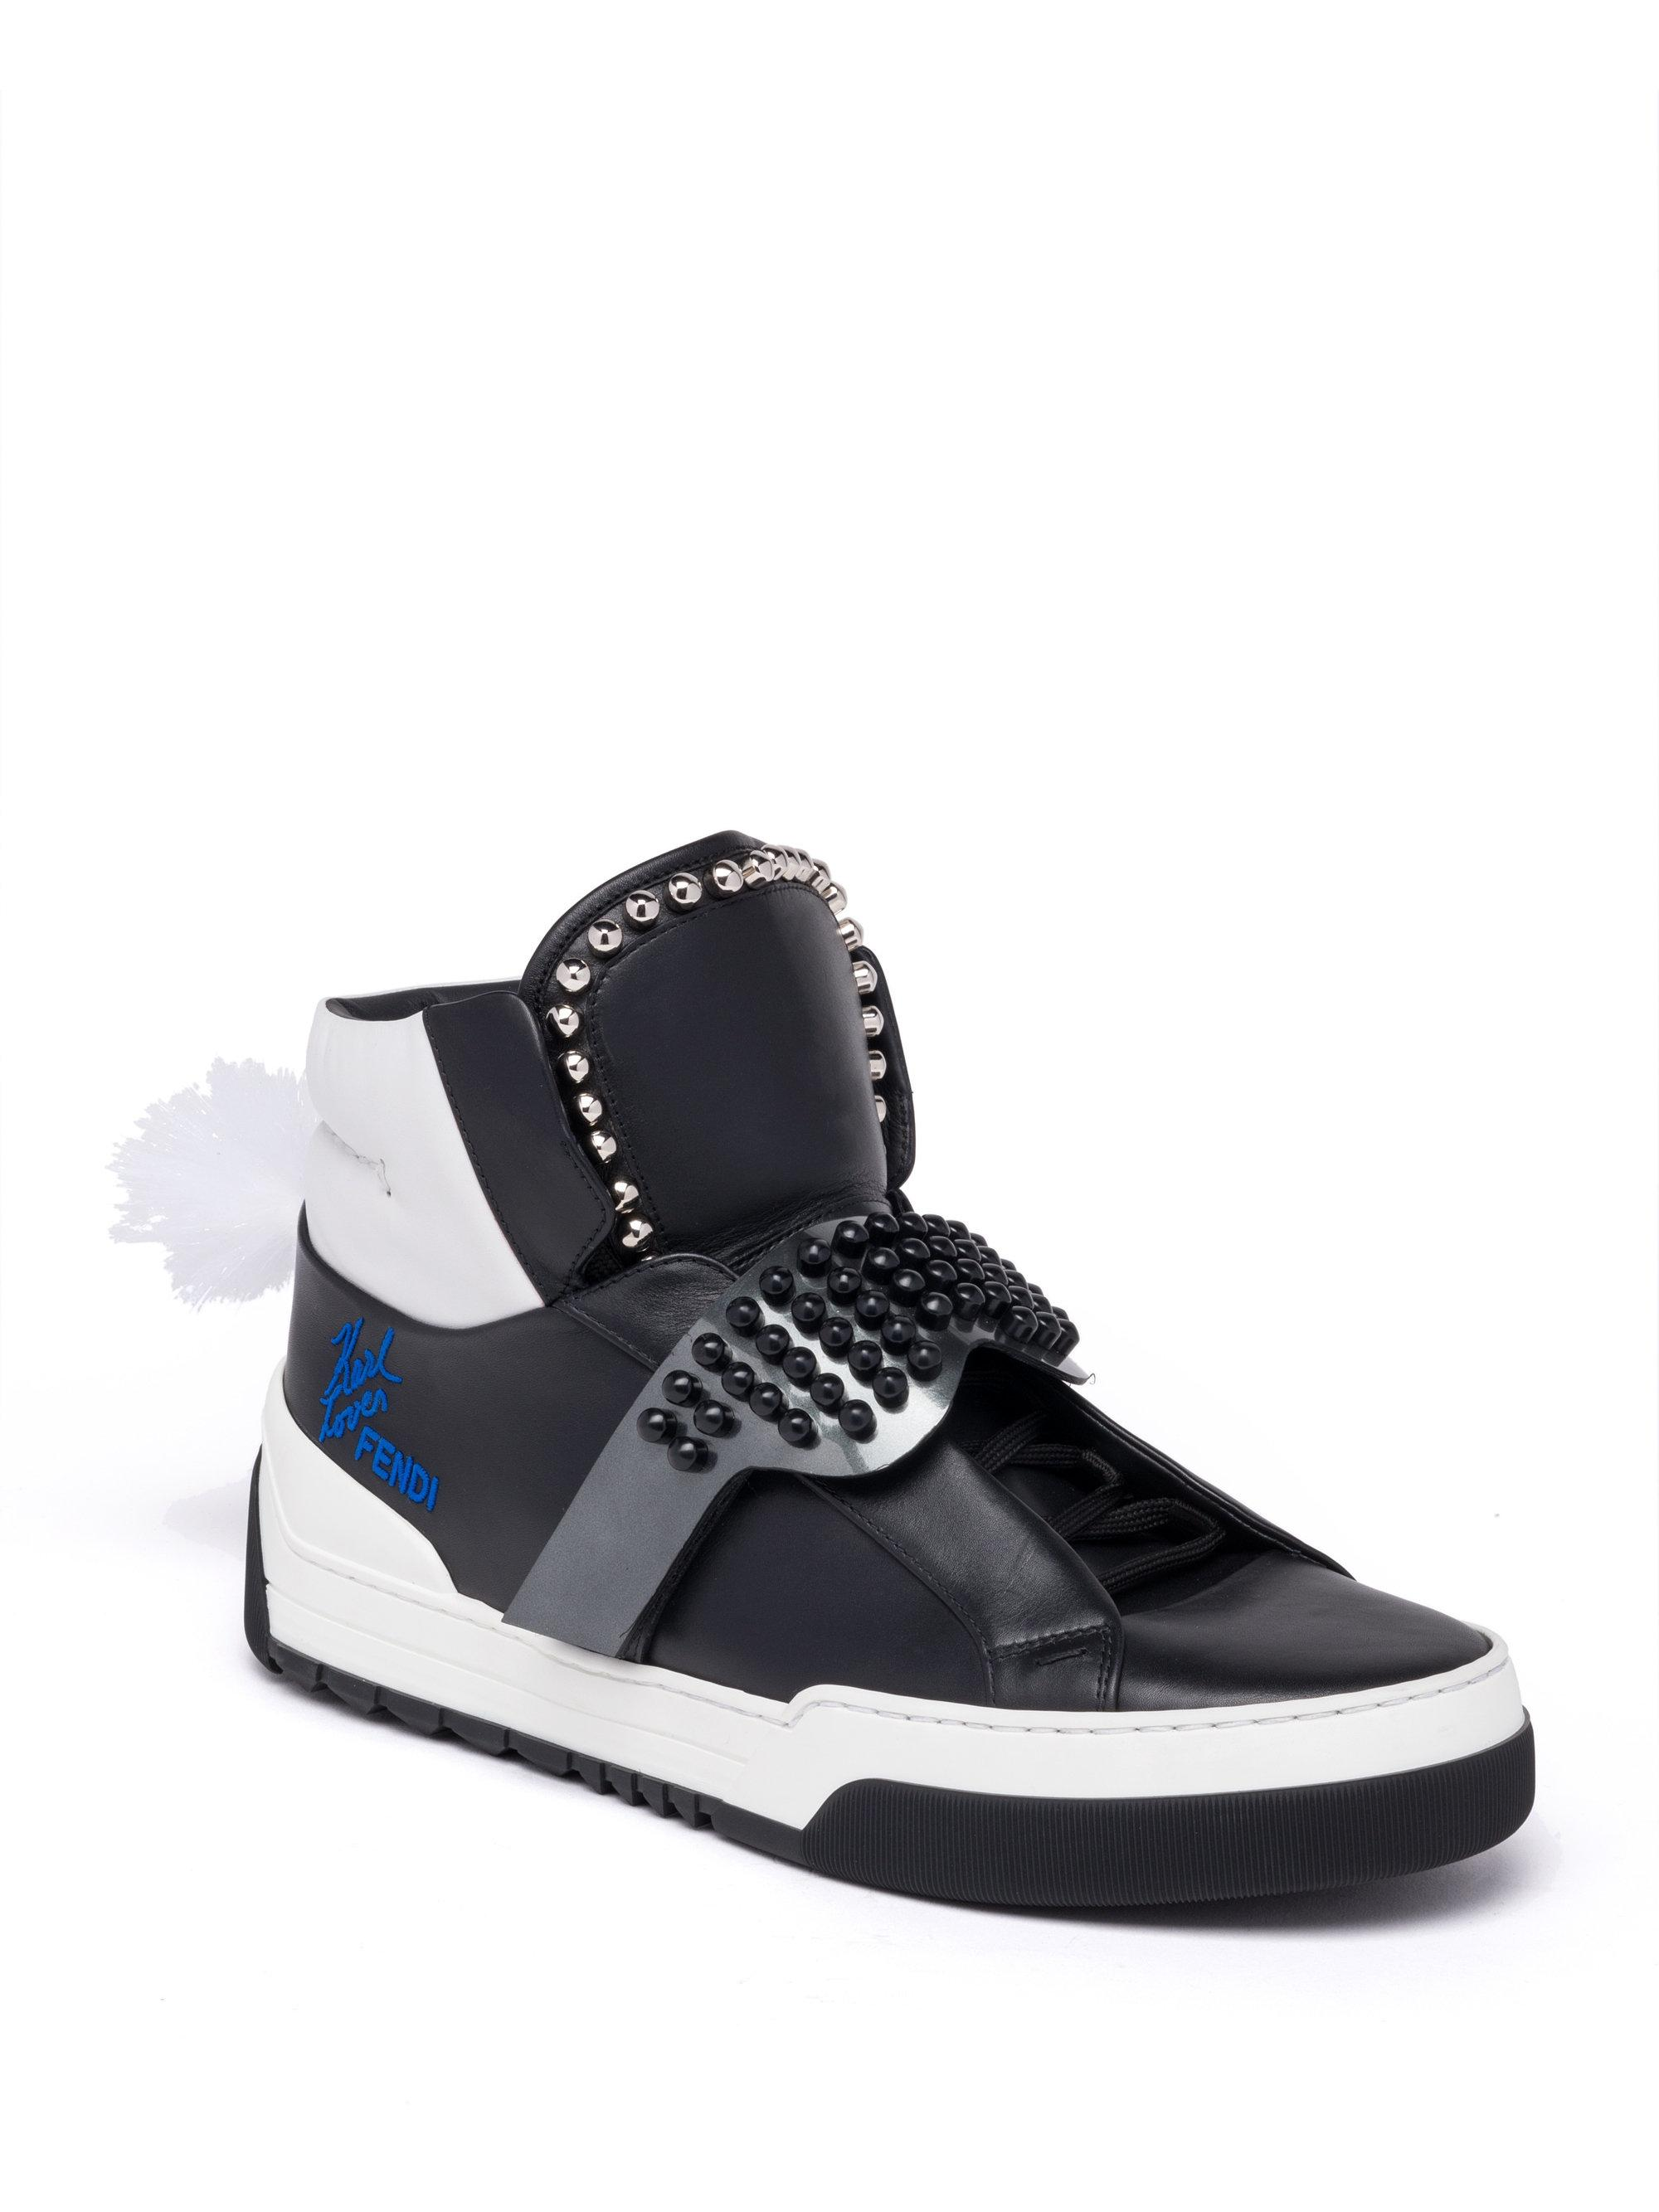 b6e7ea40facd Lyst - Fendi Karlito Studded High-top Leather Sneakers in White for Men